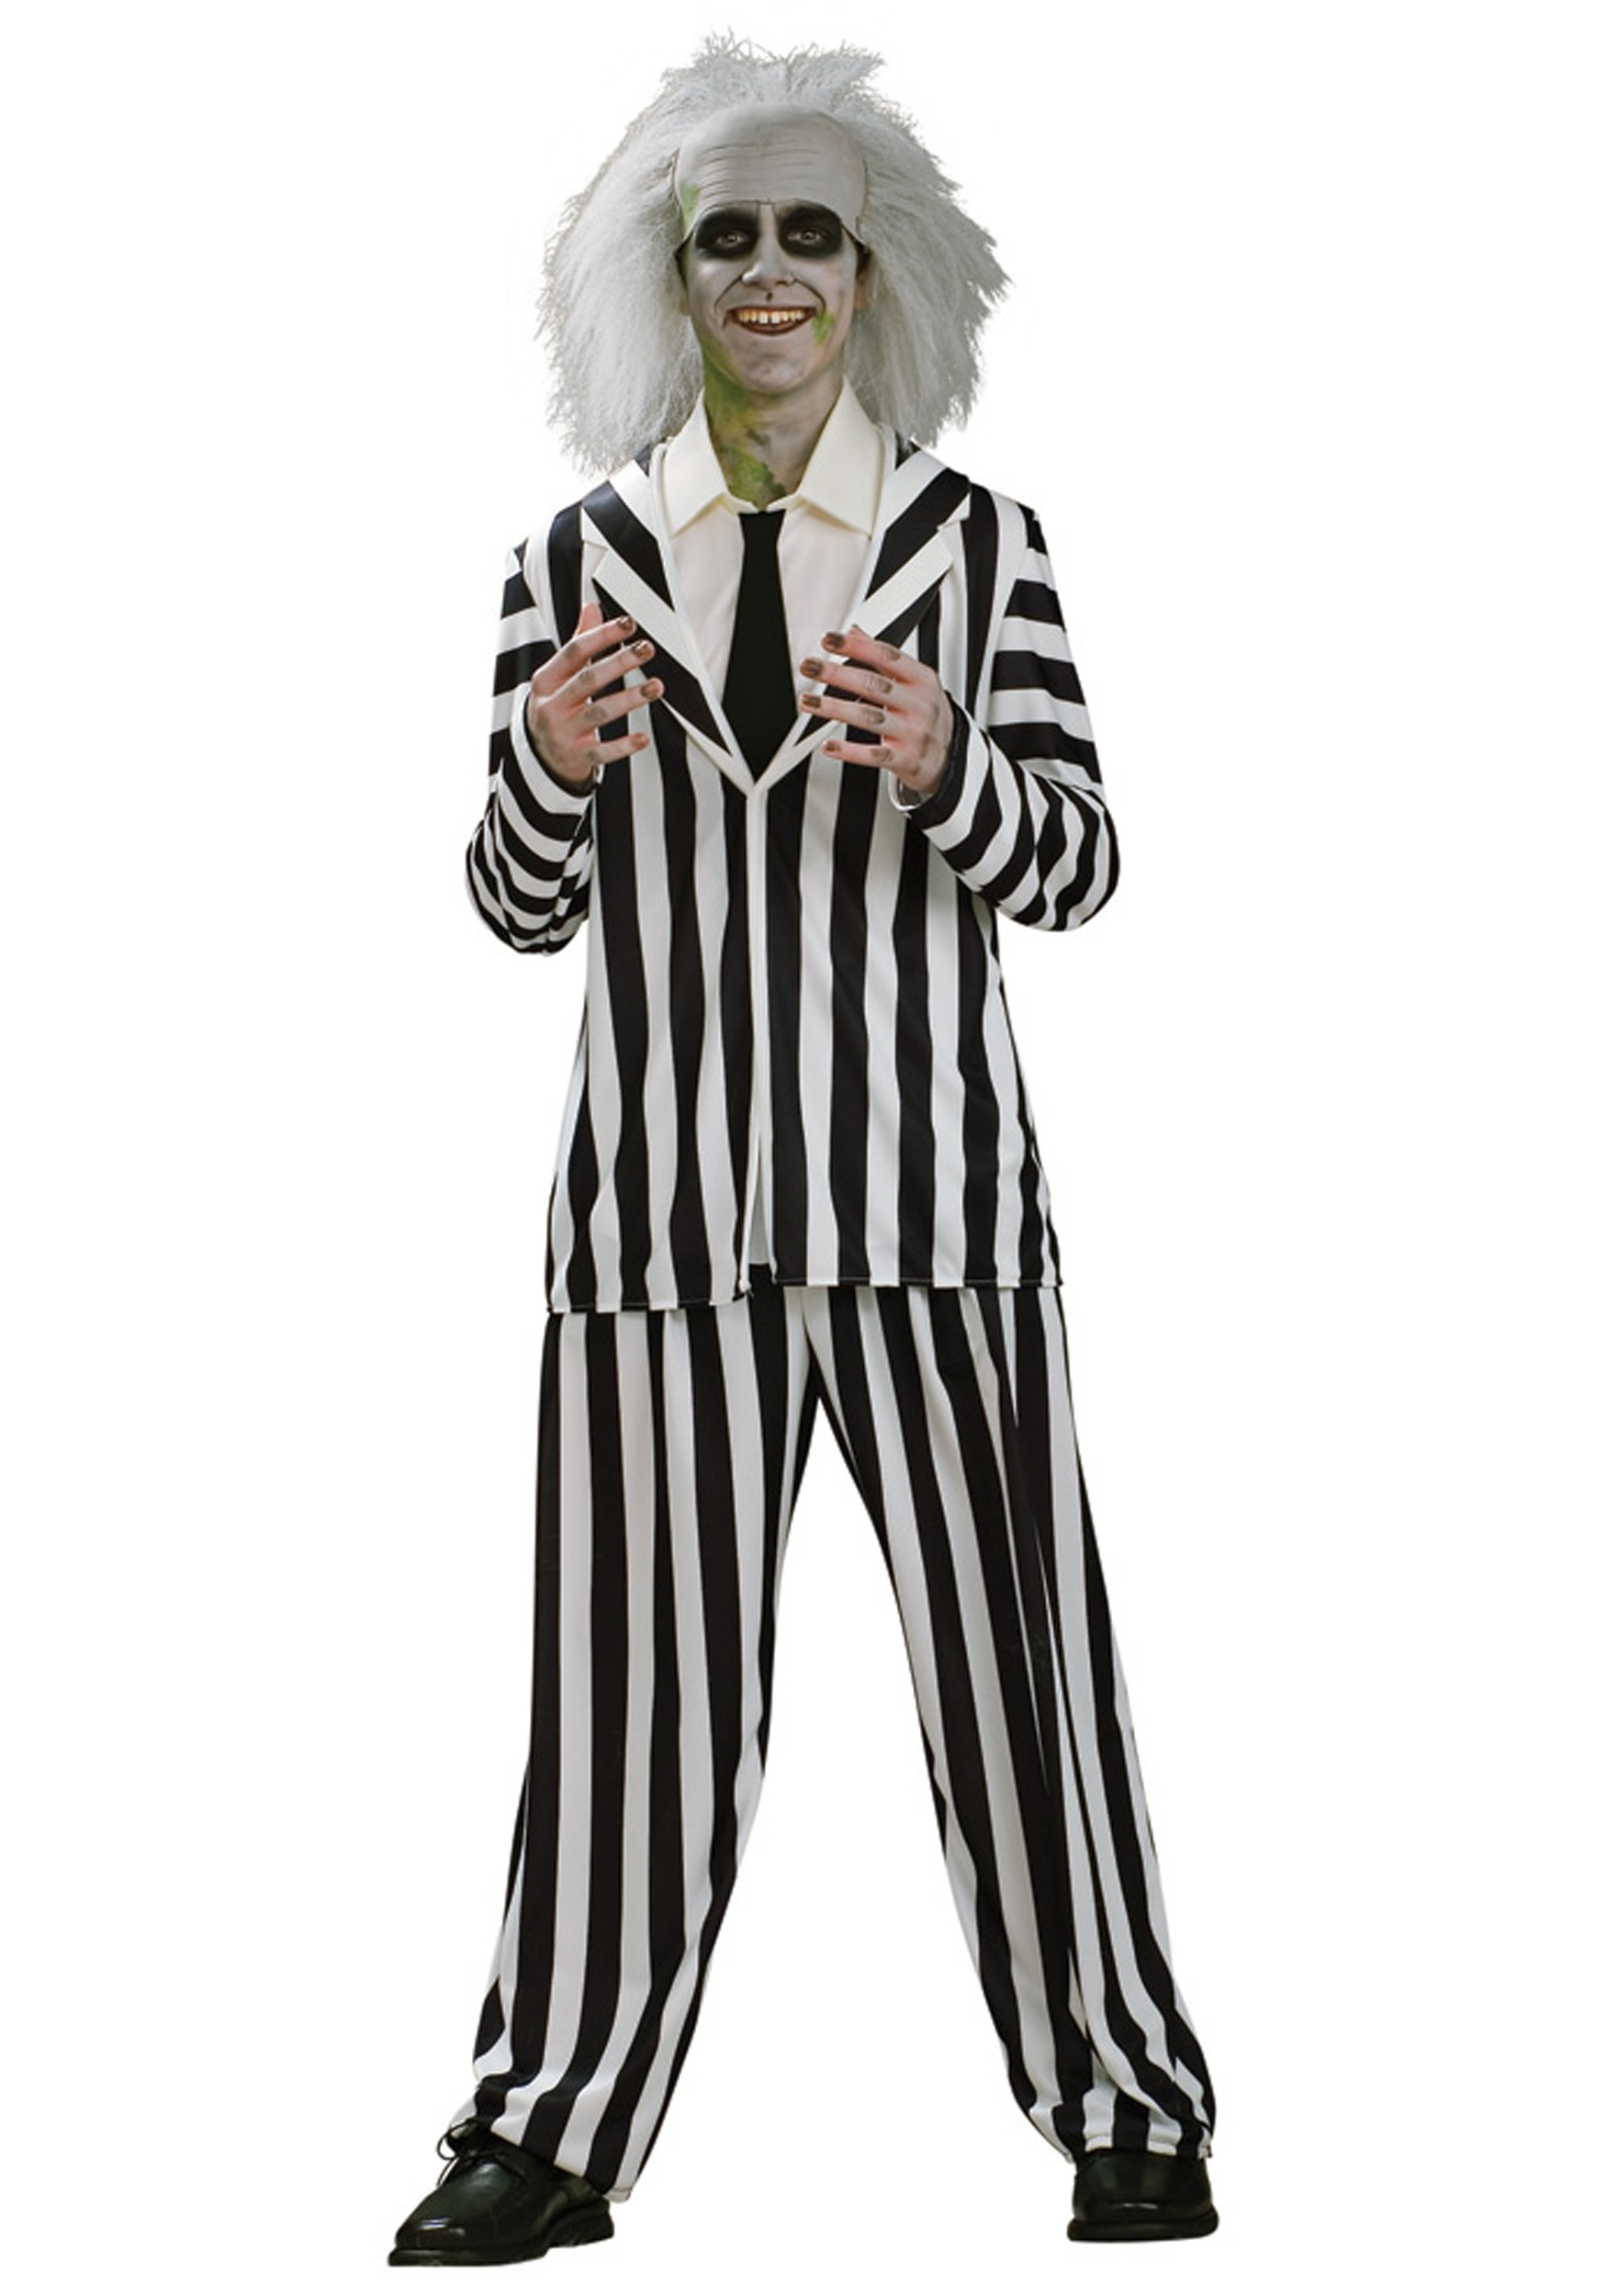 Boys Teen Beetlejuice Costume  sc 1 st  Halloween Costume & Boys Teen Beetlejuice Costume - Scary Halloween Costumes for Teens